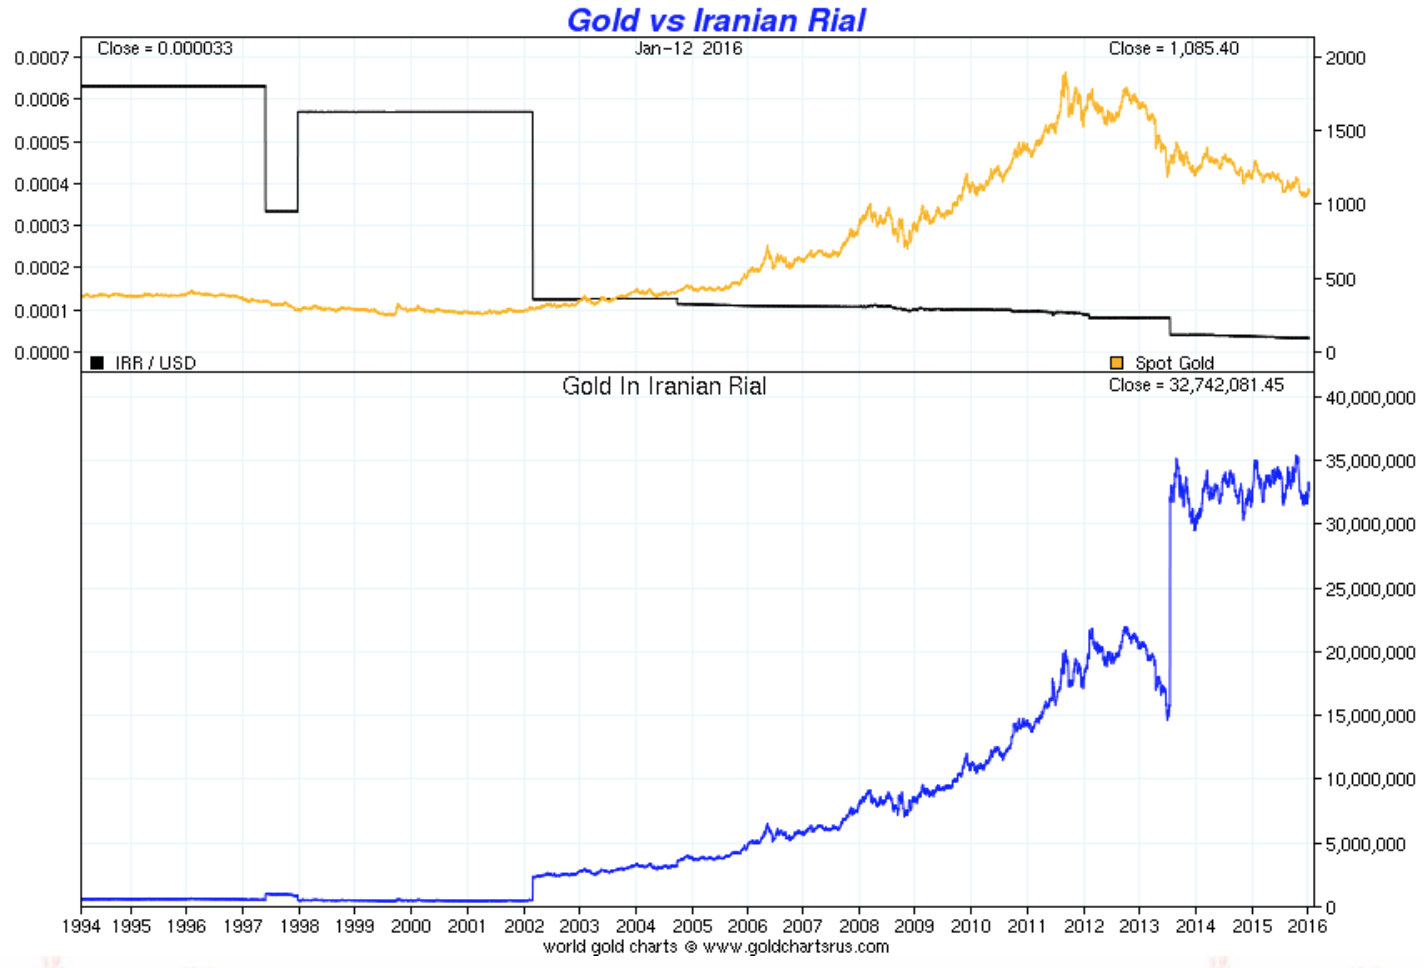 Gold vs Iranian Rial